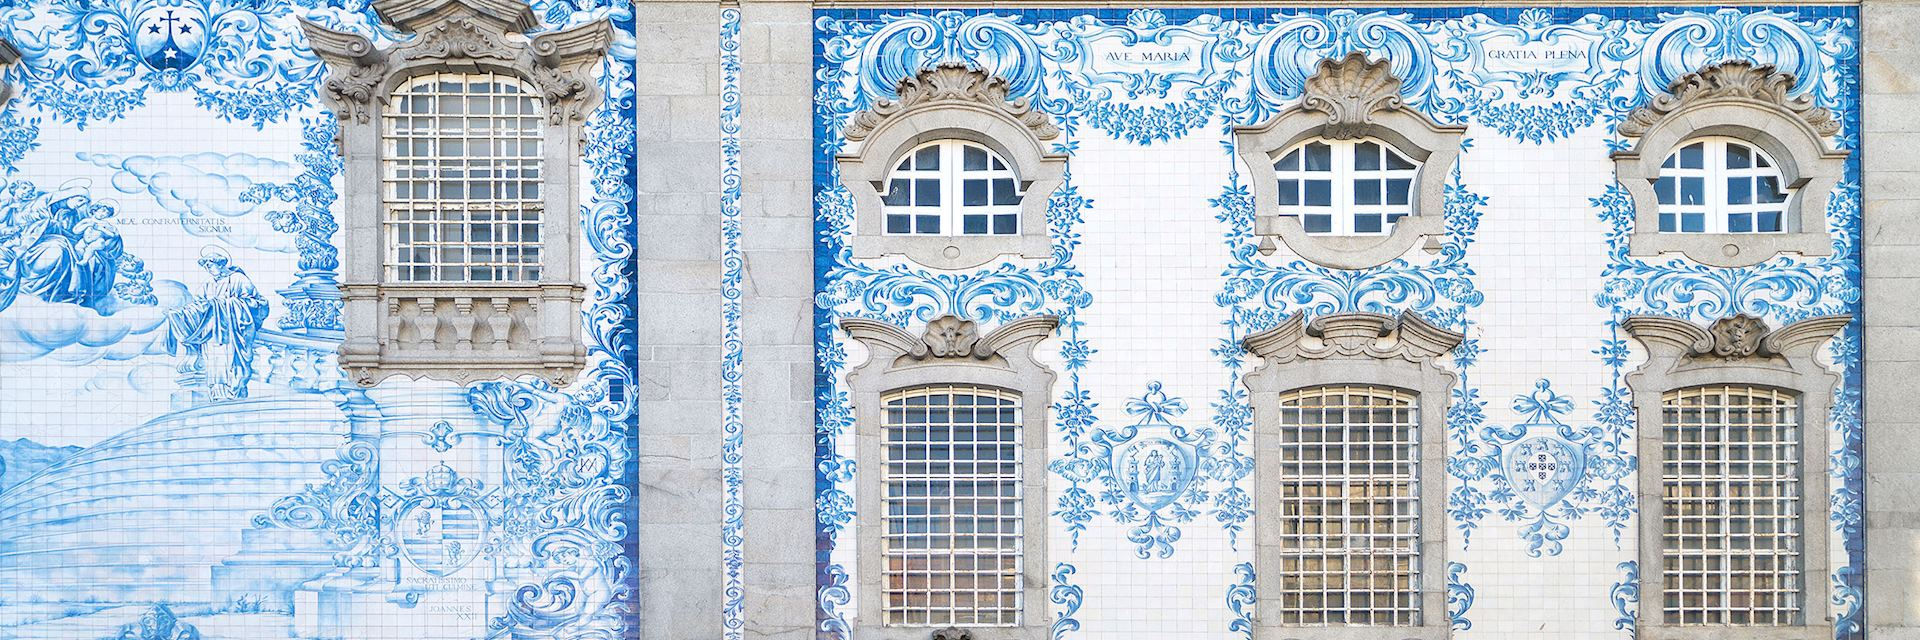 Traditional tiled church, central Porto